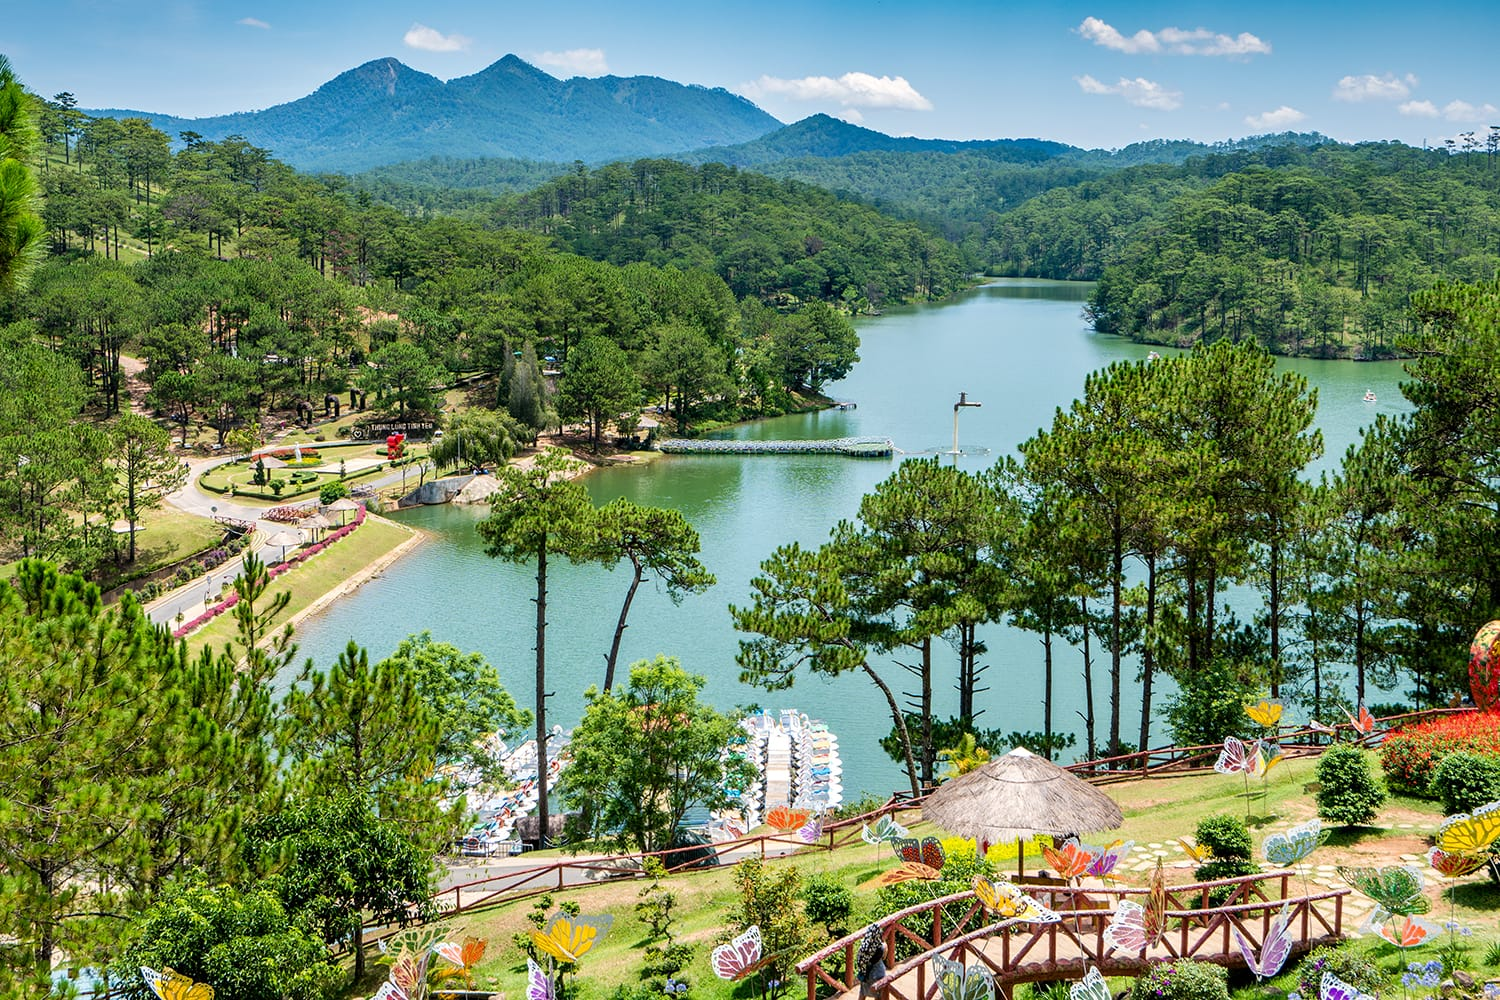 Love valley in Dalat Vietnam is one of the most romantic sites of Dalat city, with many deep valleys and endless pine forests